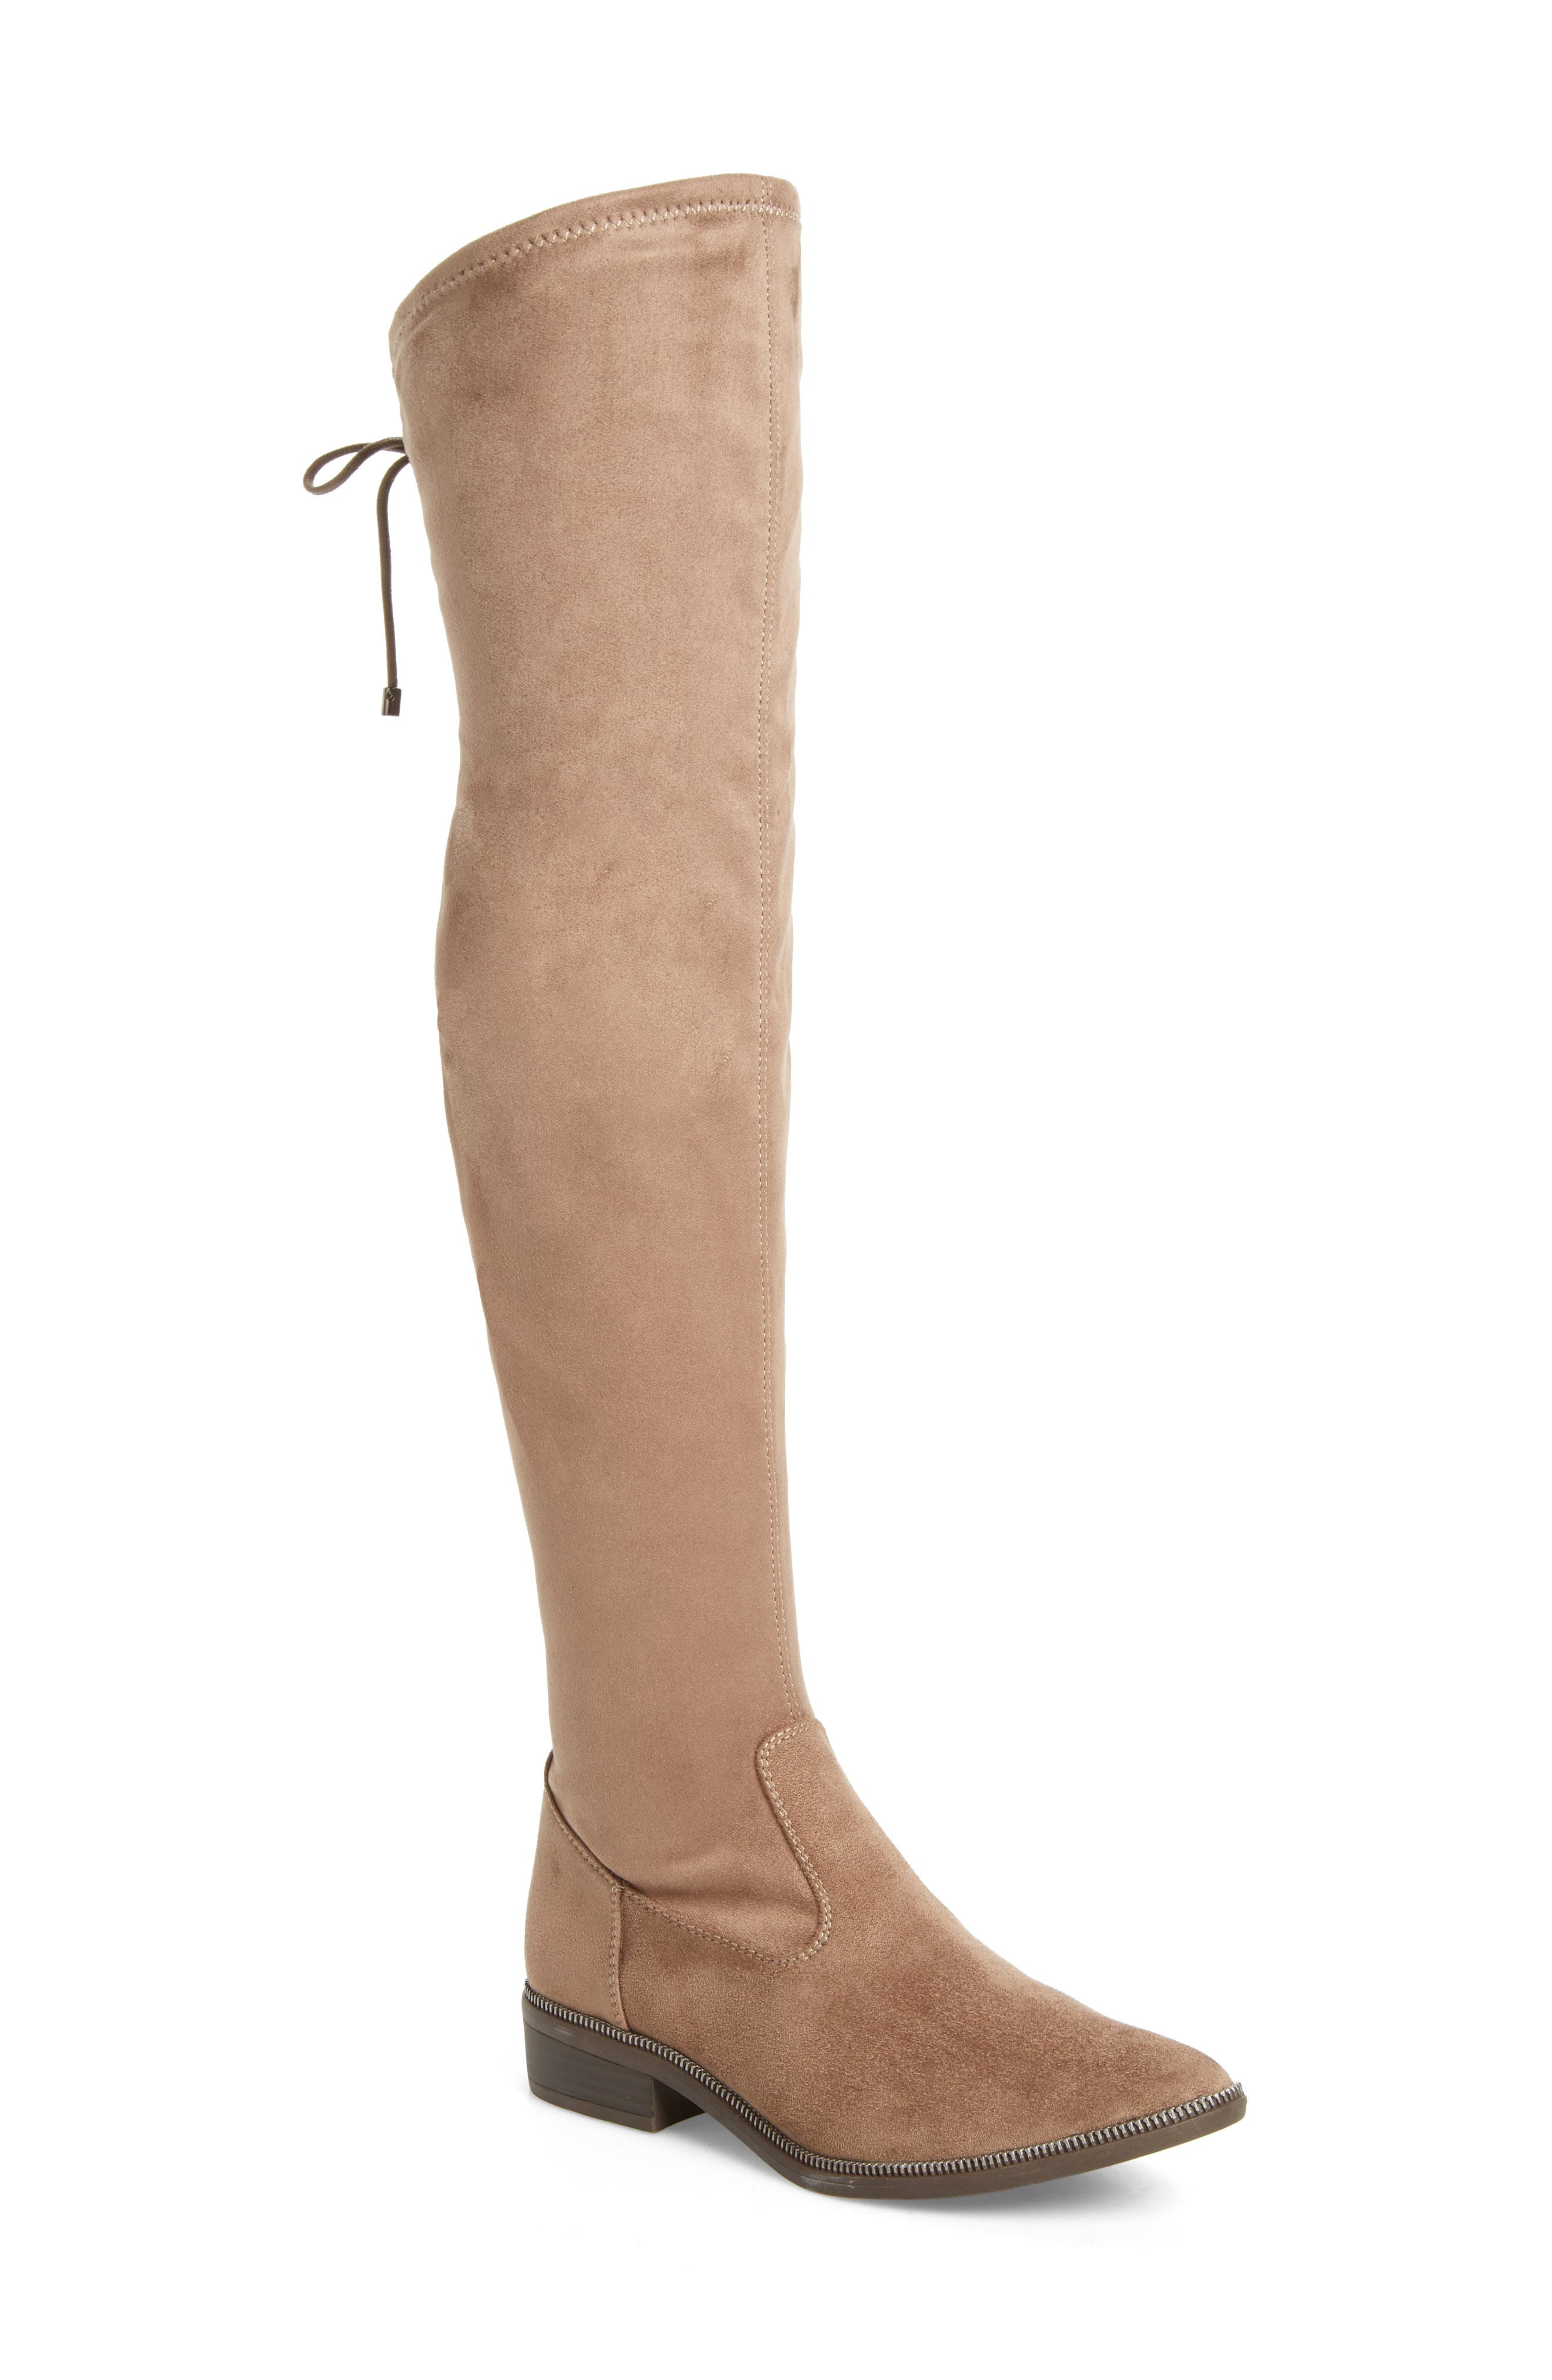 Phanie Over the Knee Stretch Boot,                             Main thumbnail 2, color,